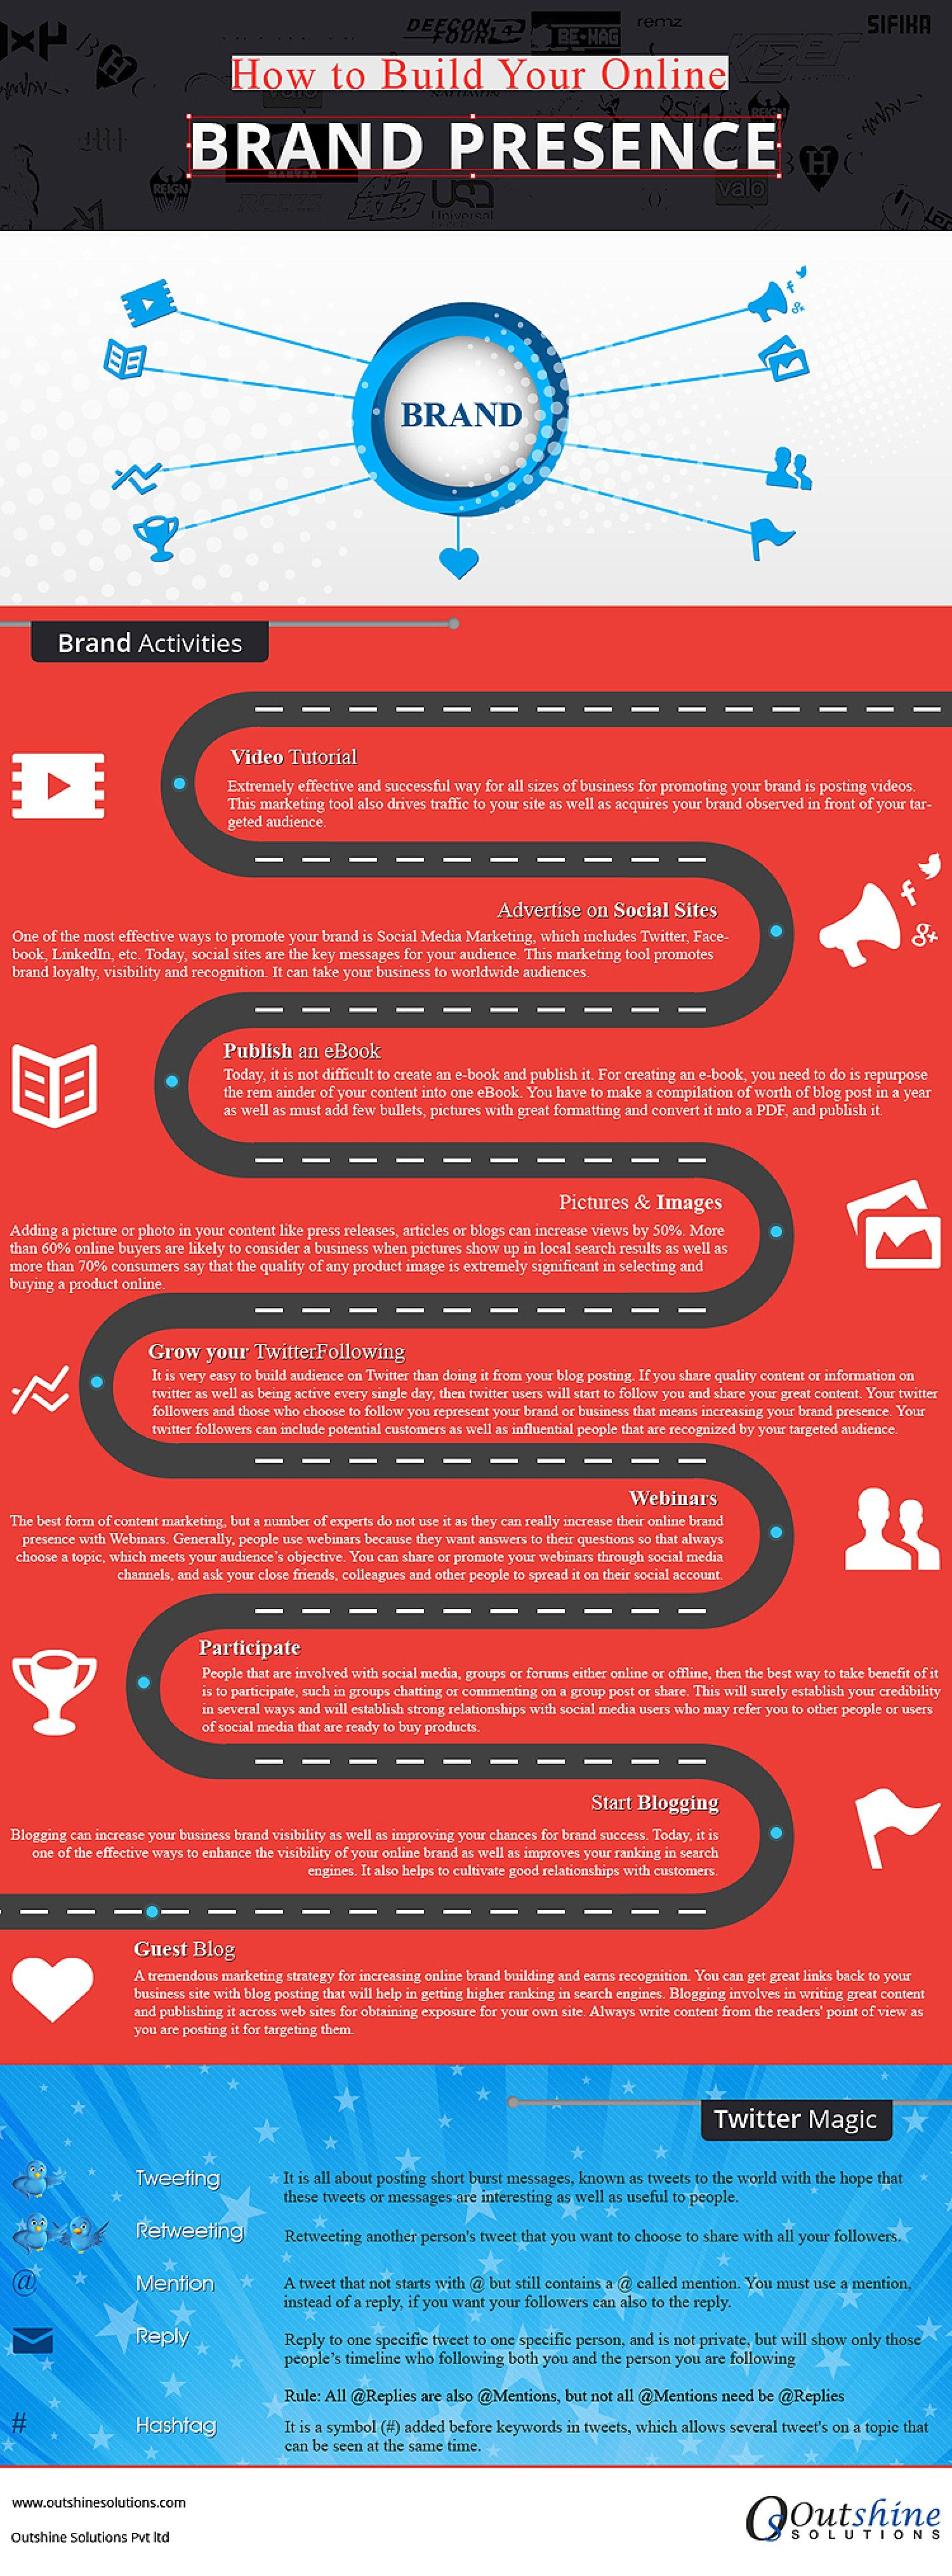 How Build Your Online Brand Presence #Infographic